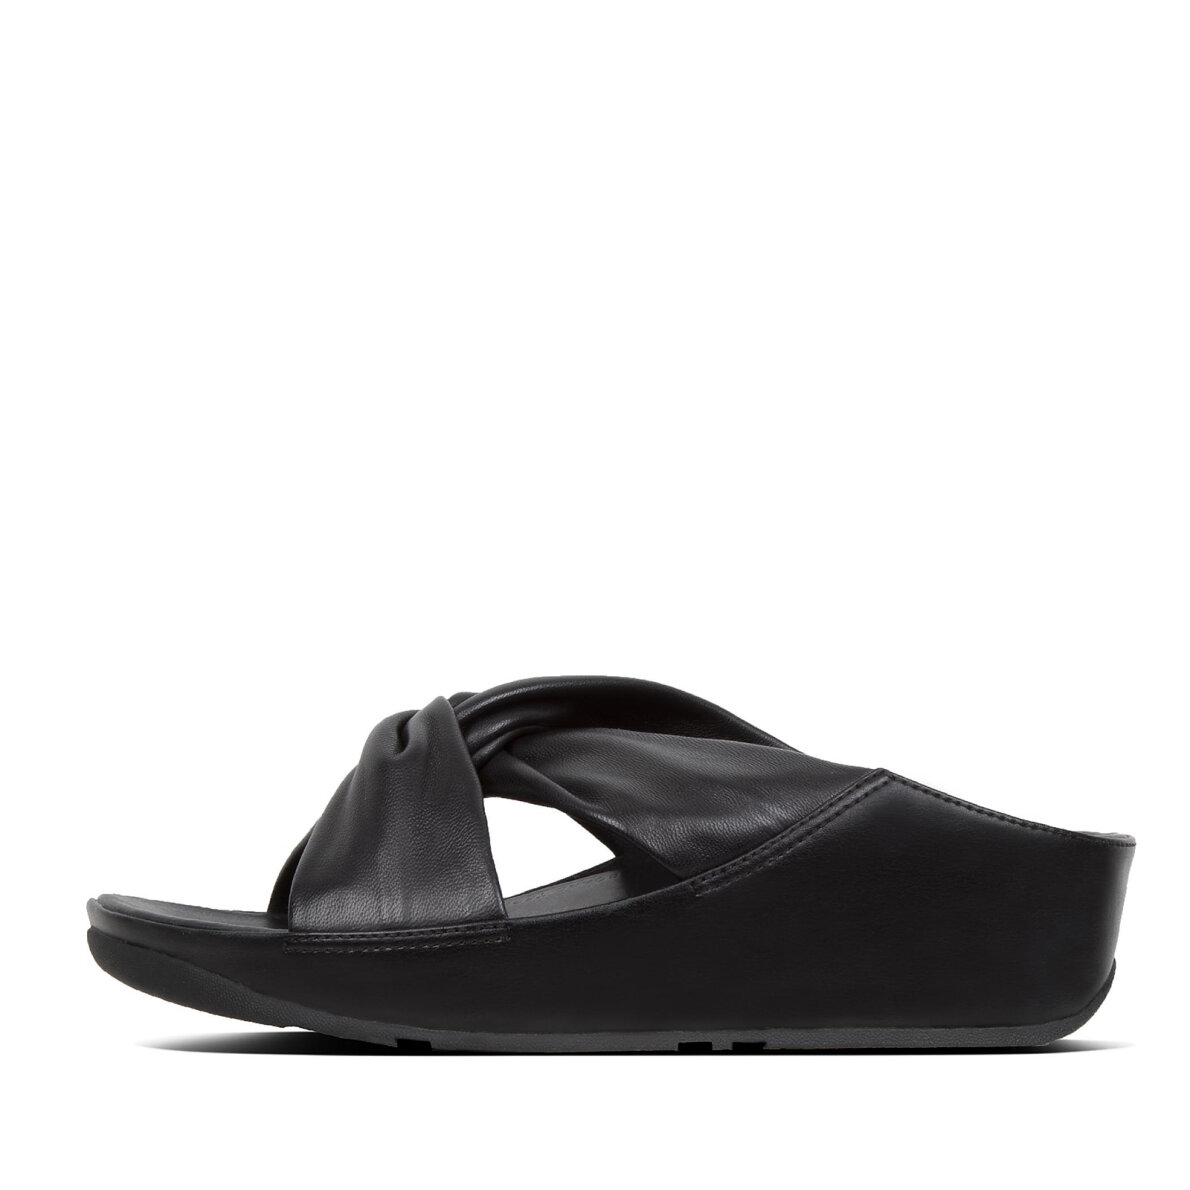 5962c74af1fd Fitflop - Fitflop Twiss Leather Slides sort dame slip in sandal ...